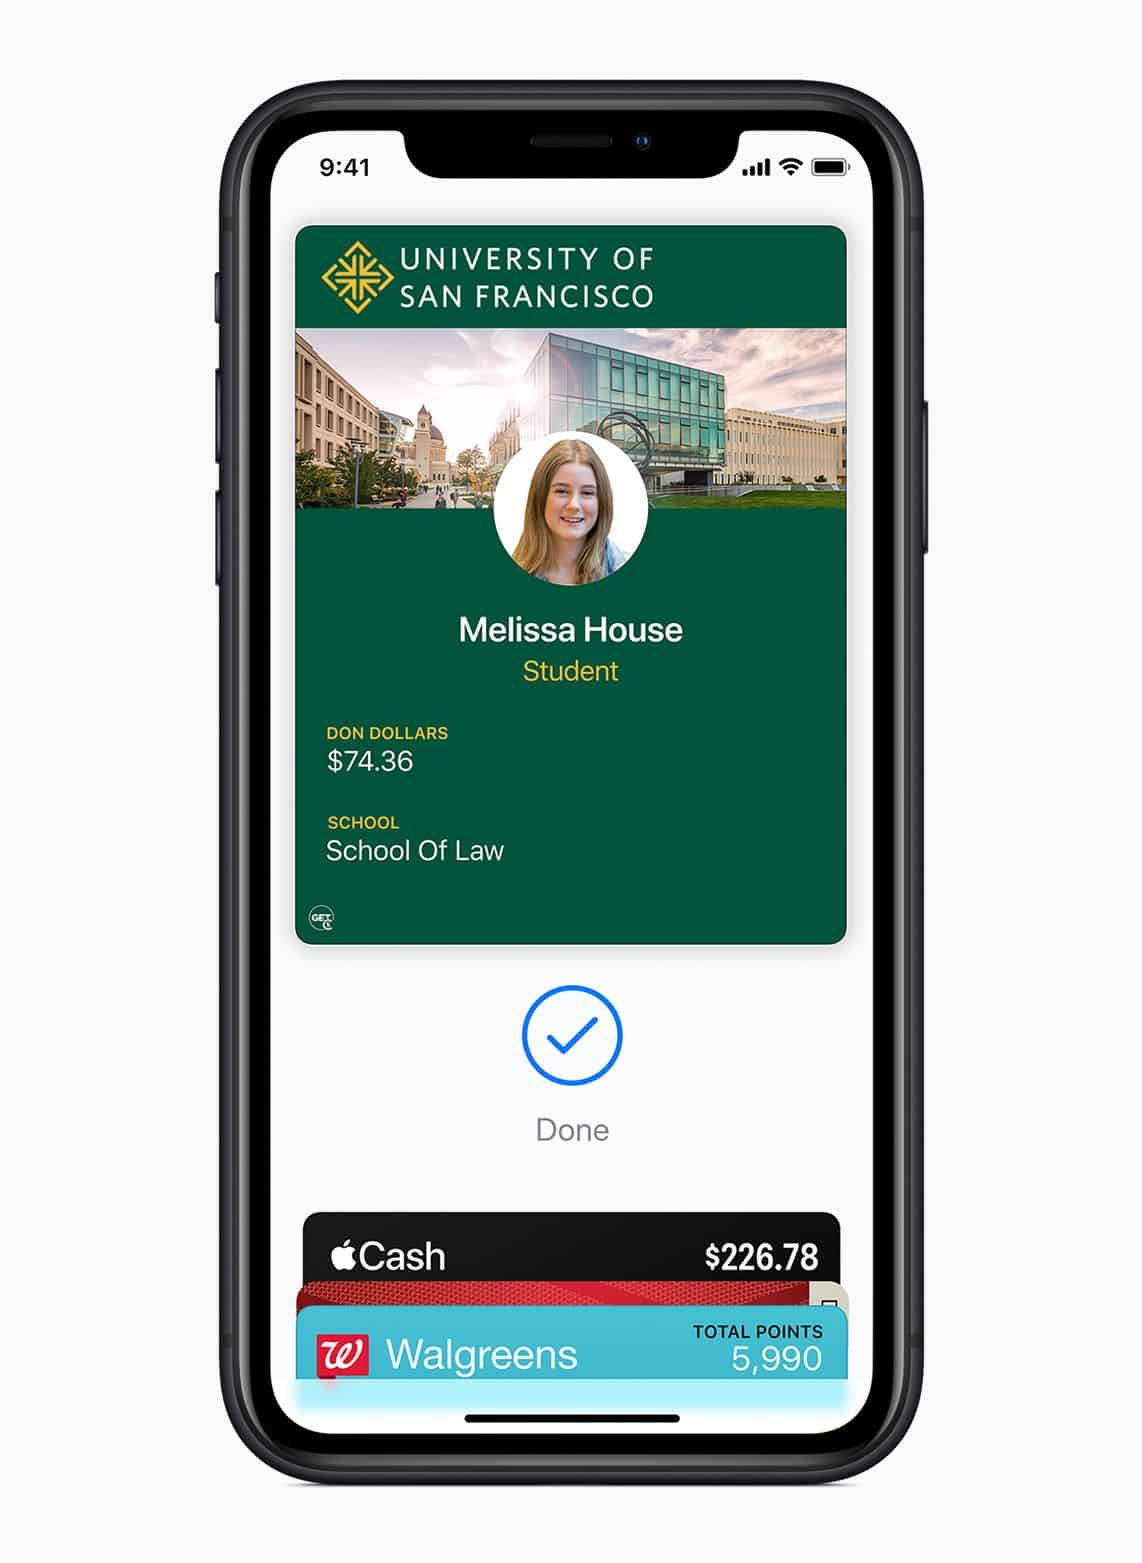 apple-brings-student-ids-to-iphone-and-apple-watch-university-of-san-francisco-student-id-screen